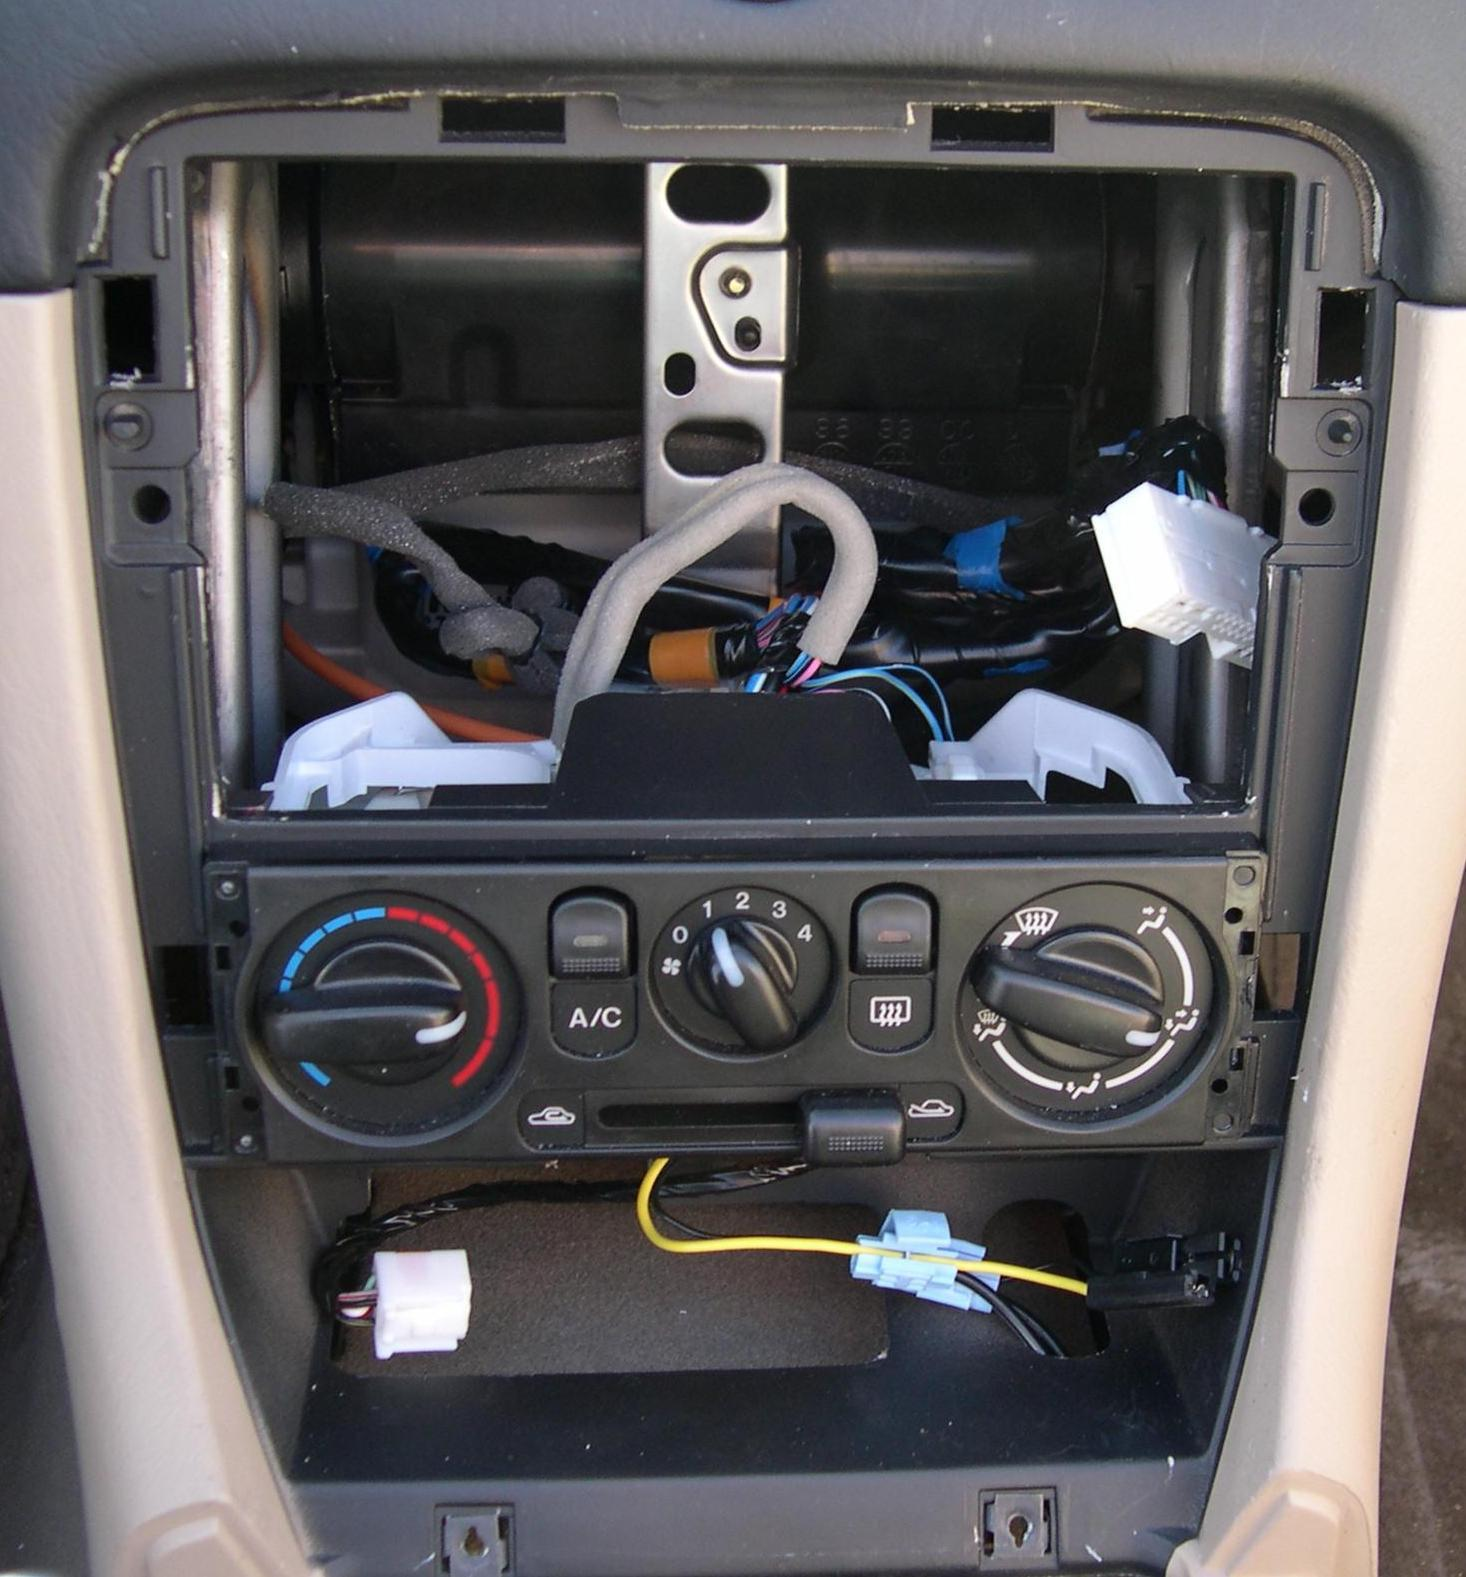 The Mazda Nb Oem Audio System Faq Wiring Head Unit Without Harness Furthermore Pin Relay Diagram 2001 Radio Out Photo Stephen Foskett